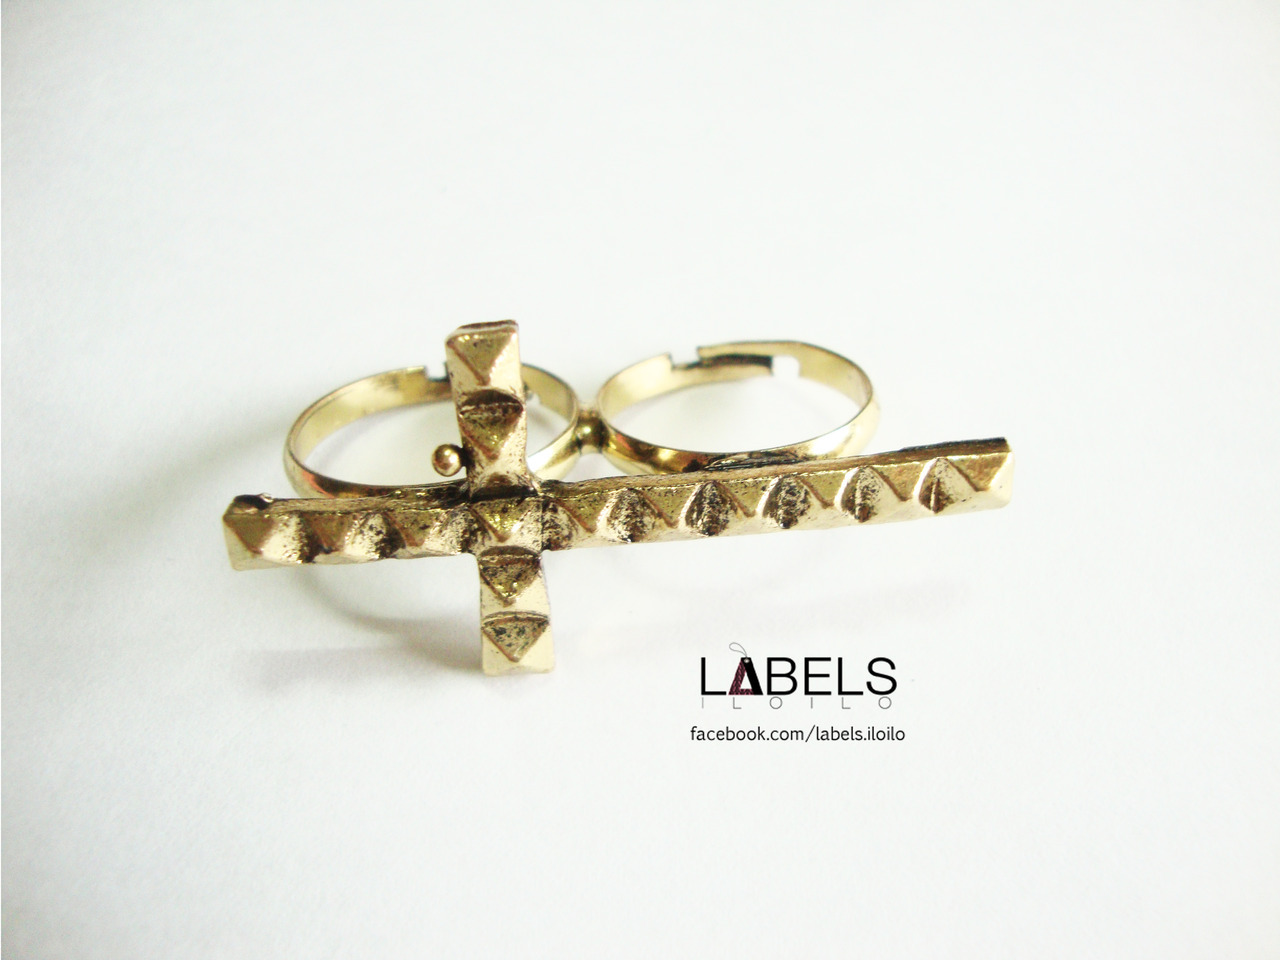 CROSS CONNECTOR RING  http://facebook.com/labels.iloilo